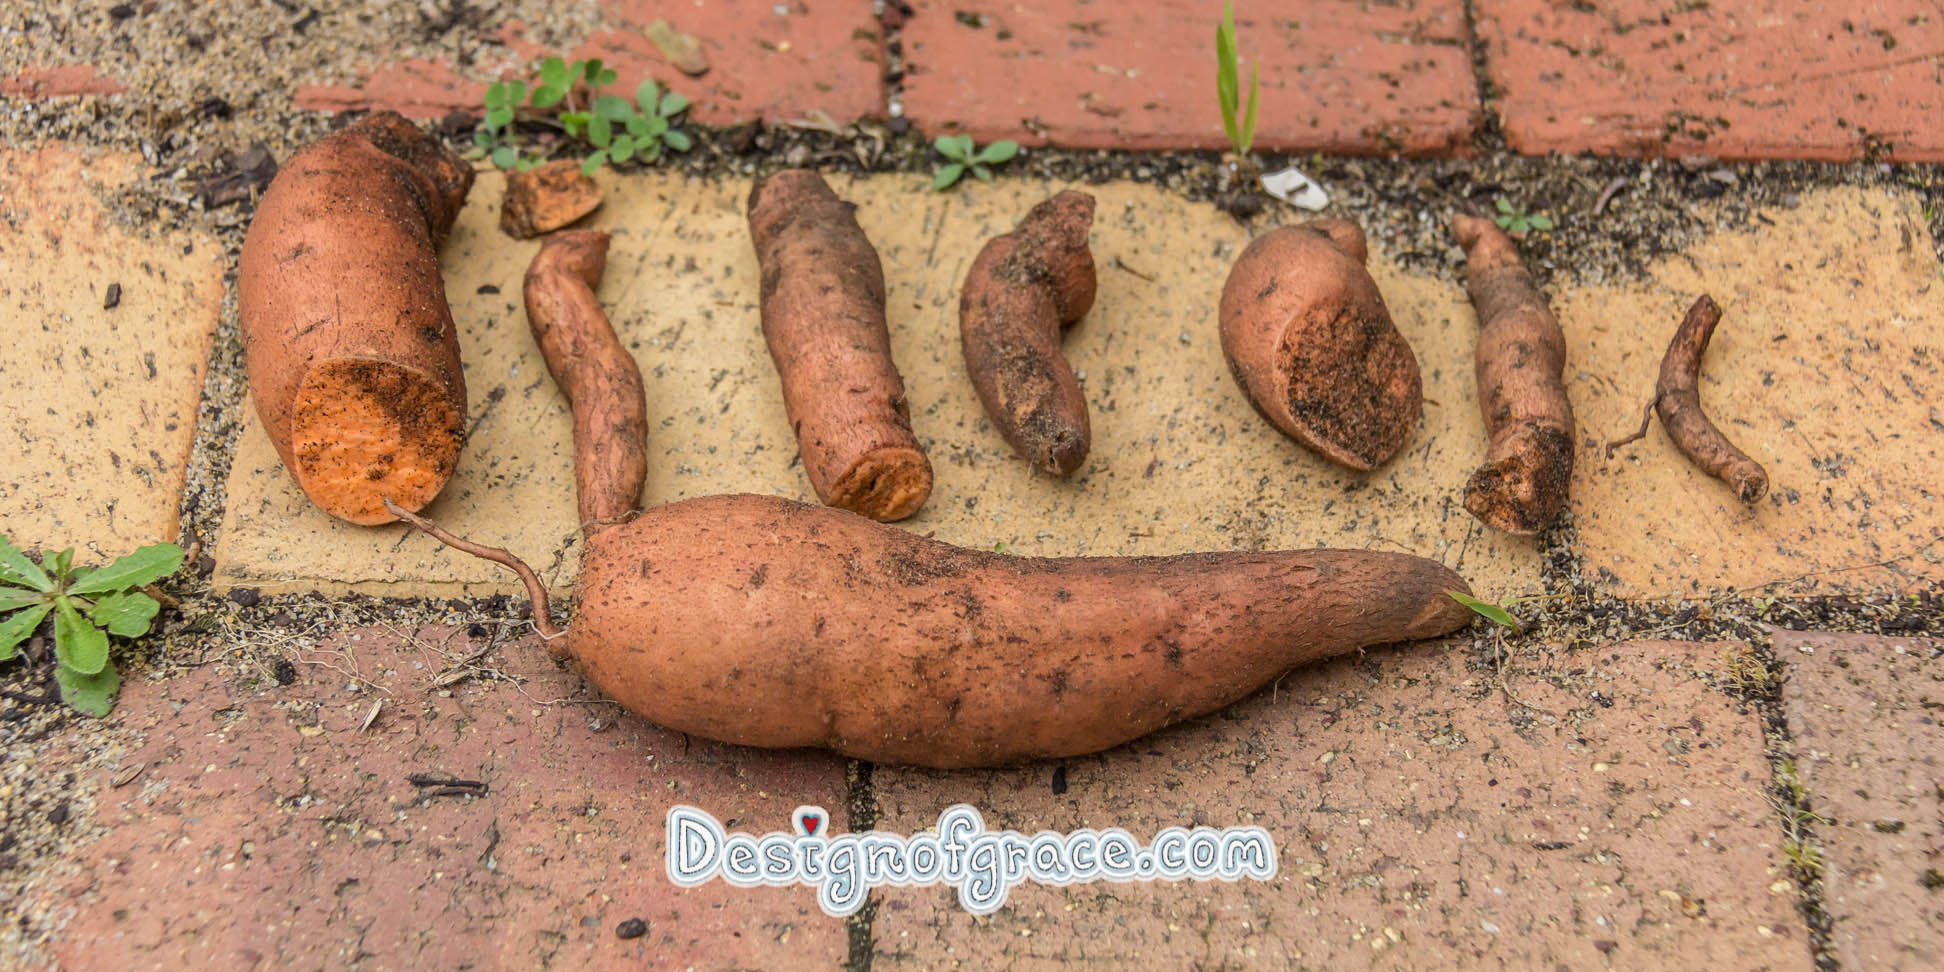 Sweet potato harvest from home grown crop